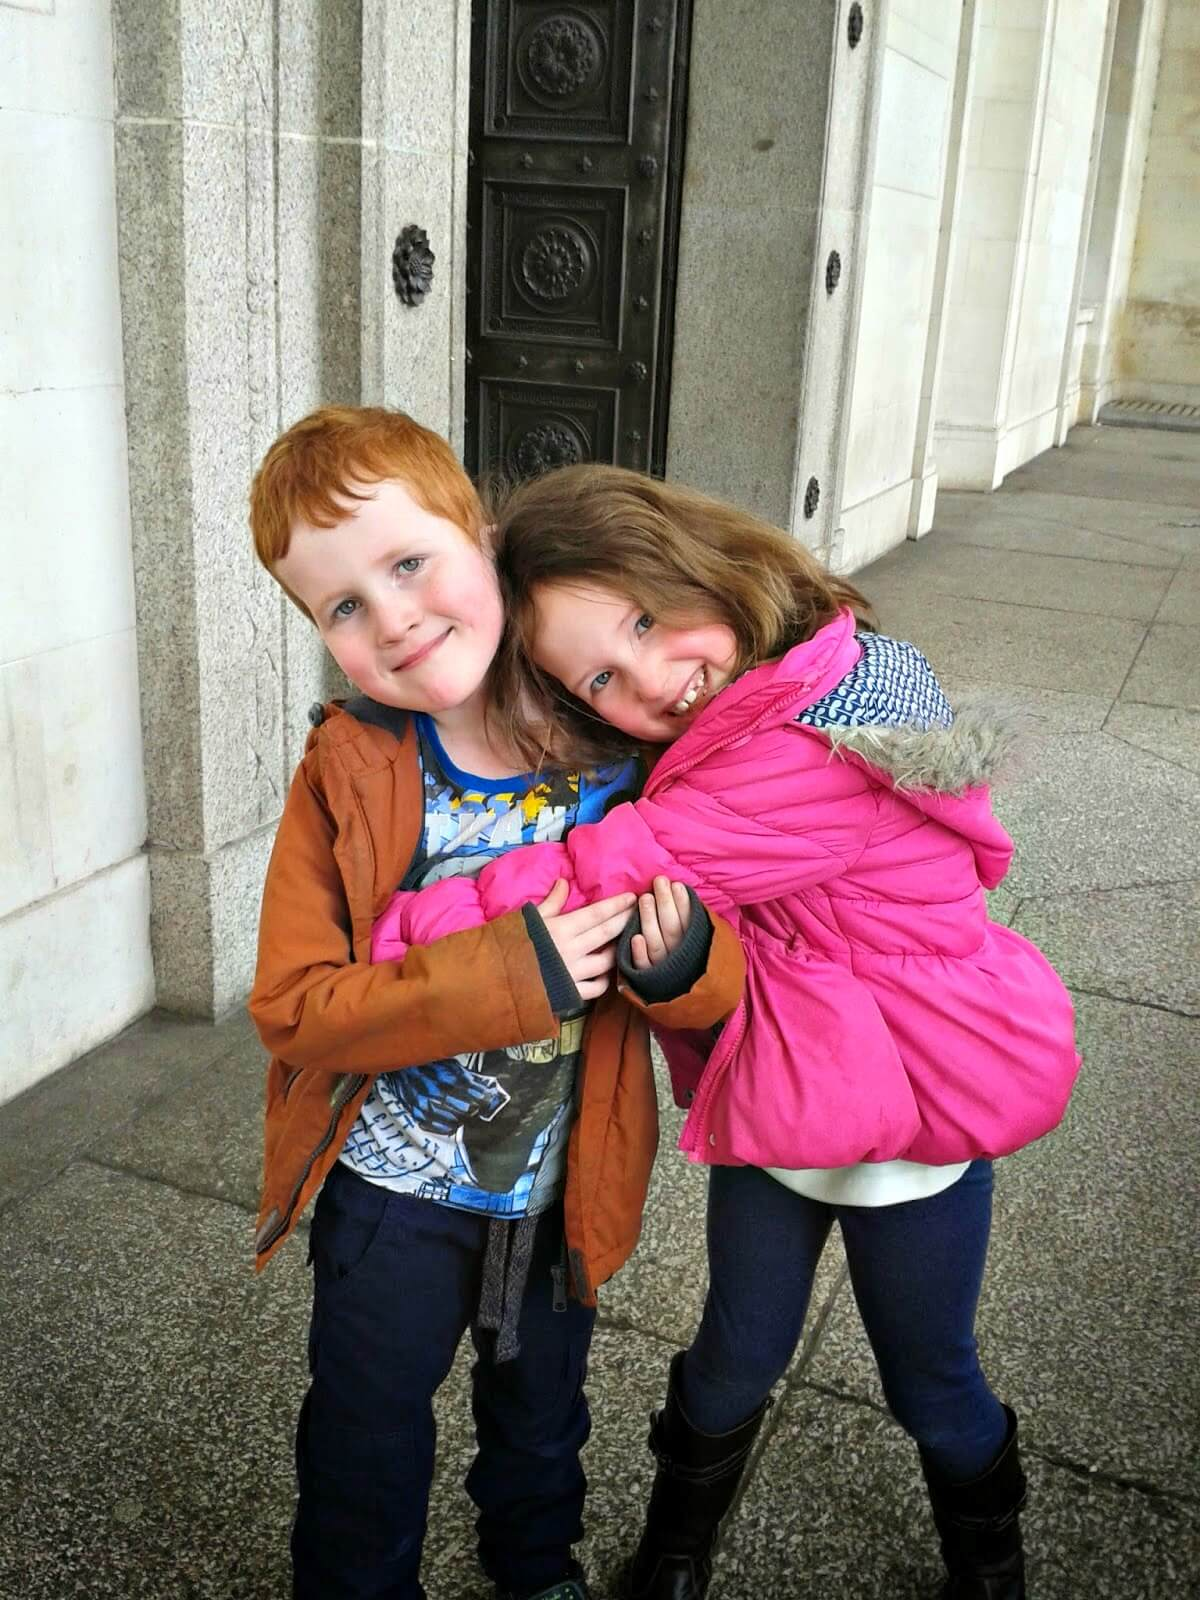 museums to visit in Cardiff -Caitlin and Ieuan outside National Museum Cardiff